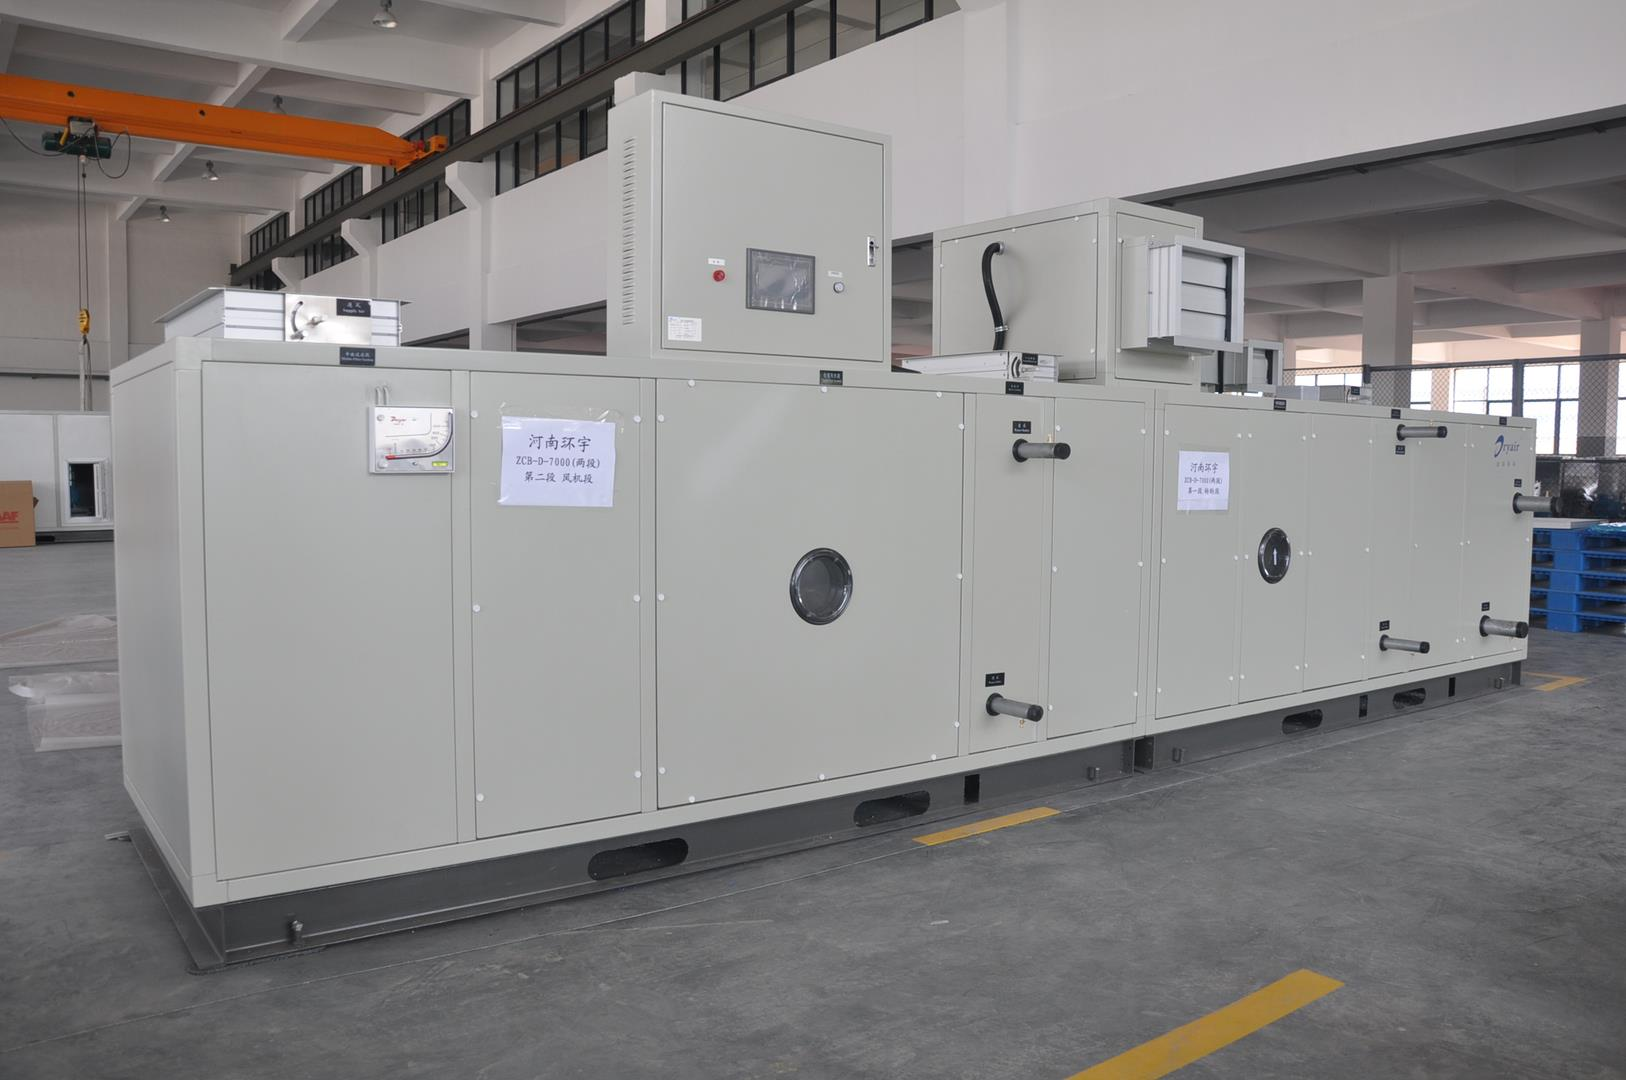 Zcb Series Desiccant Dehumidifiers Regeneration Airflow And Process Airflow Are Filtered